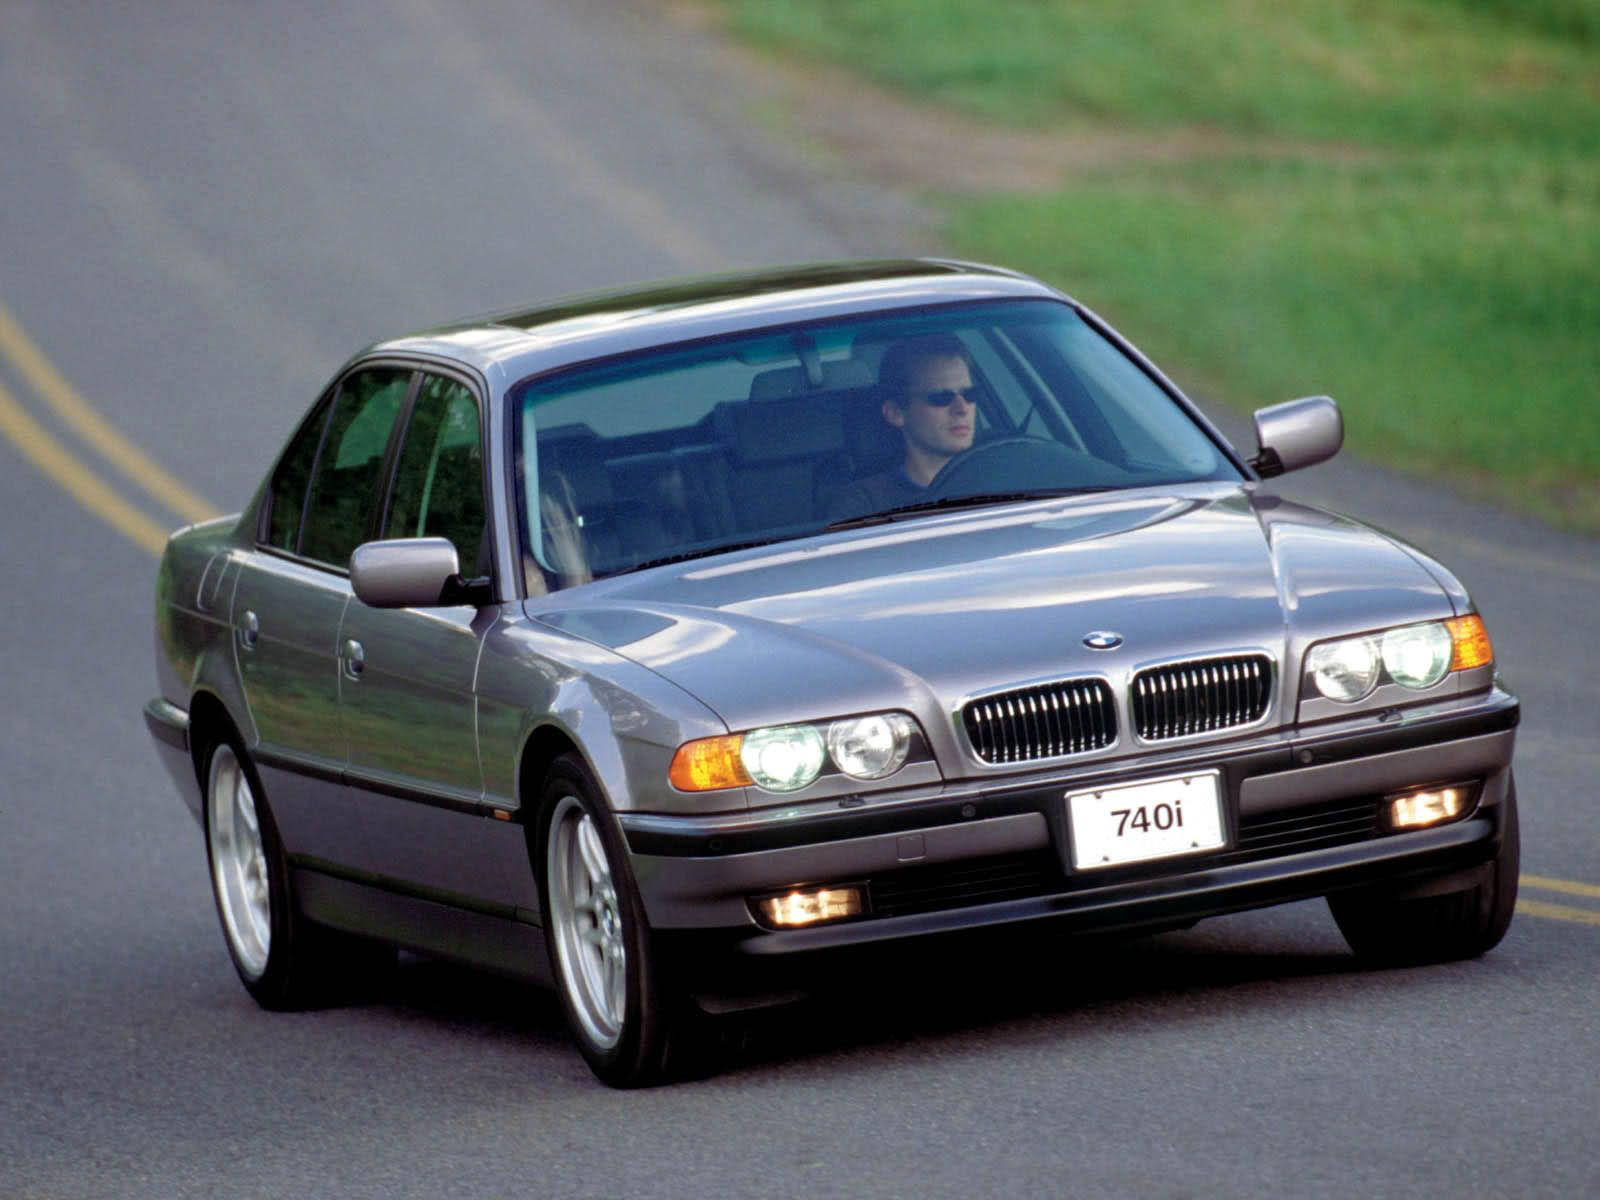 1999 BMW E38 (735i/740i): With the V8 engine being the preferred ...